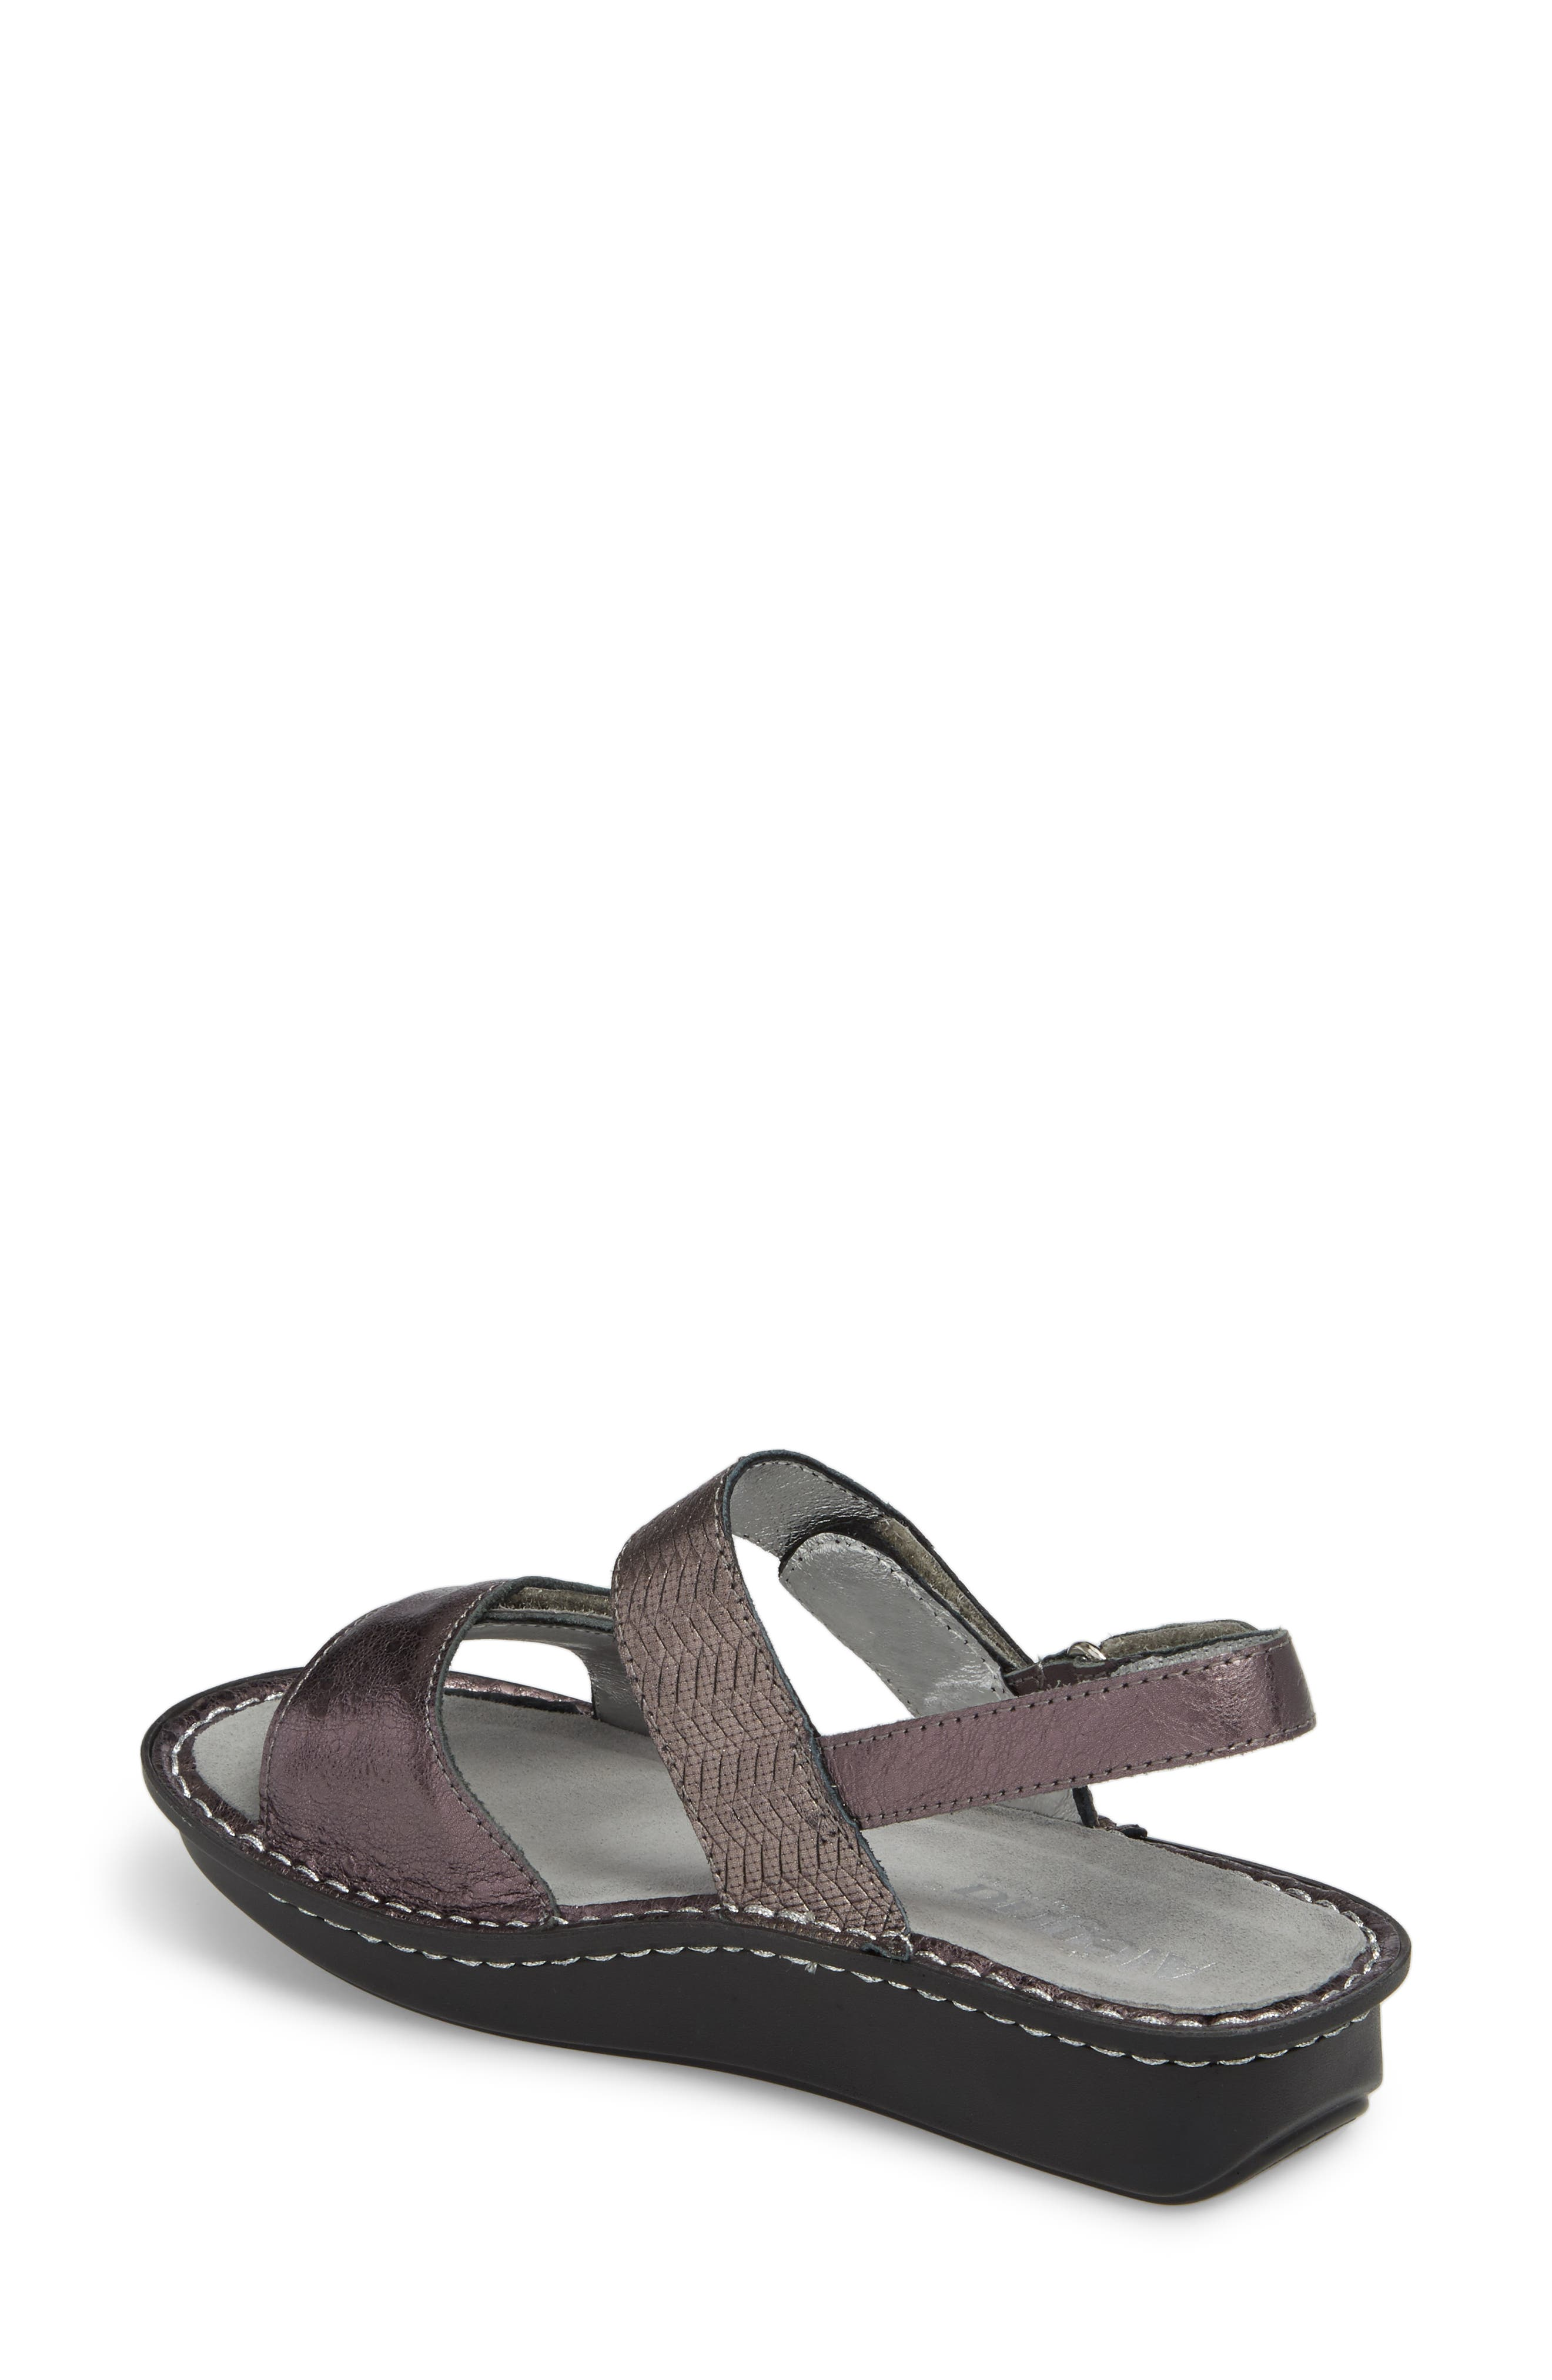 'Verona' Sandal,                             Alternate thumbnail 2, color,                             Braided Pewter Leather